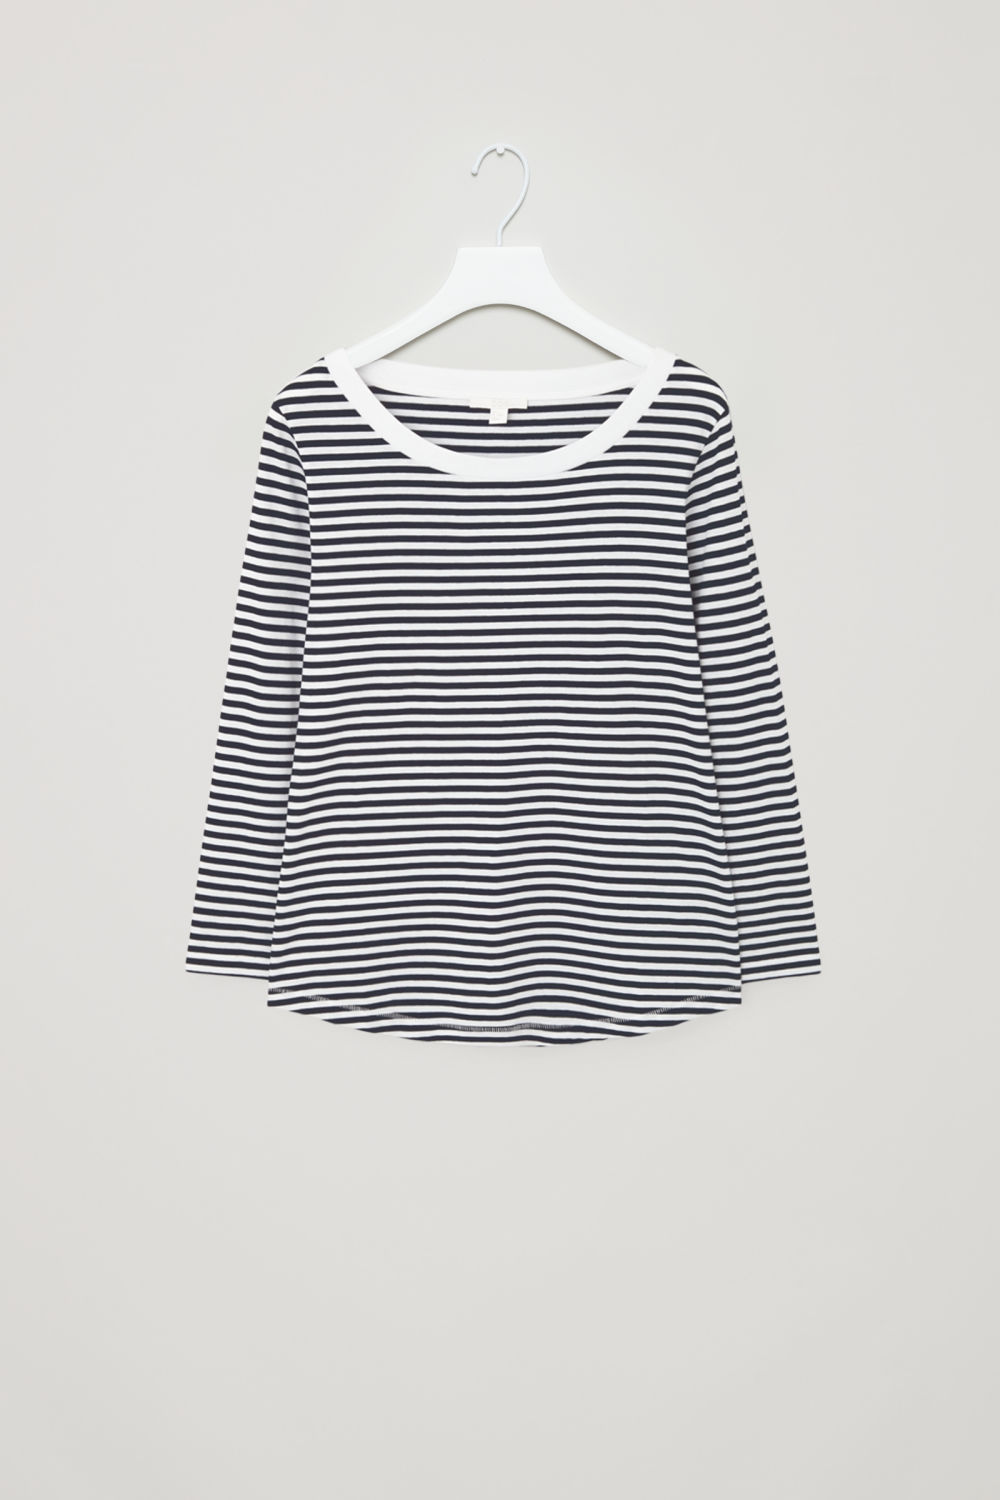 ¾-SLEEVED COTTON T-SHIRT